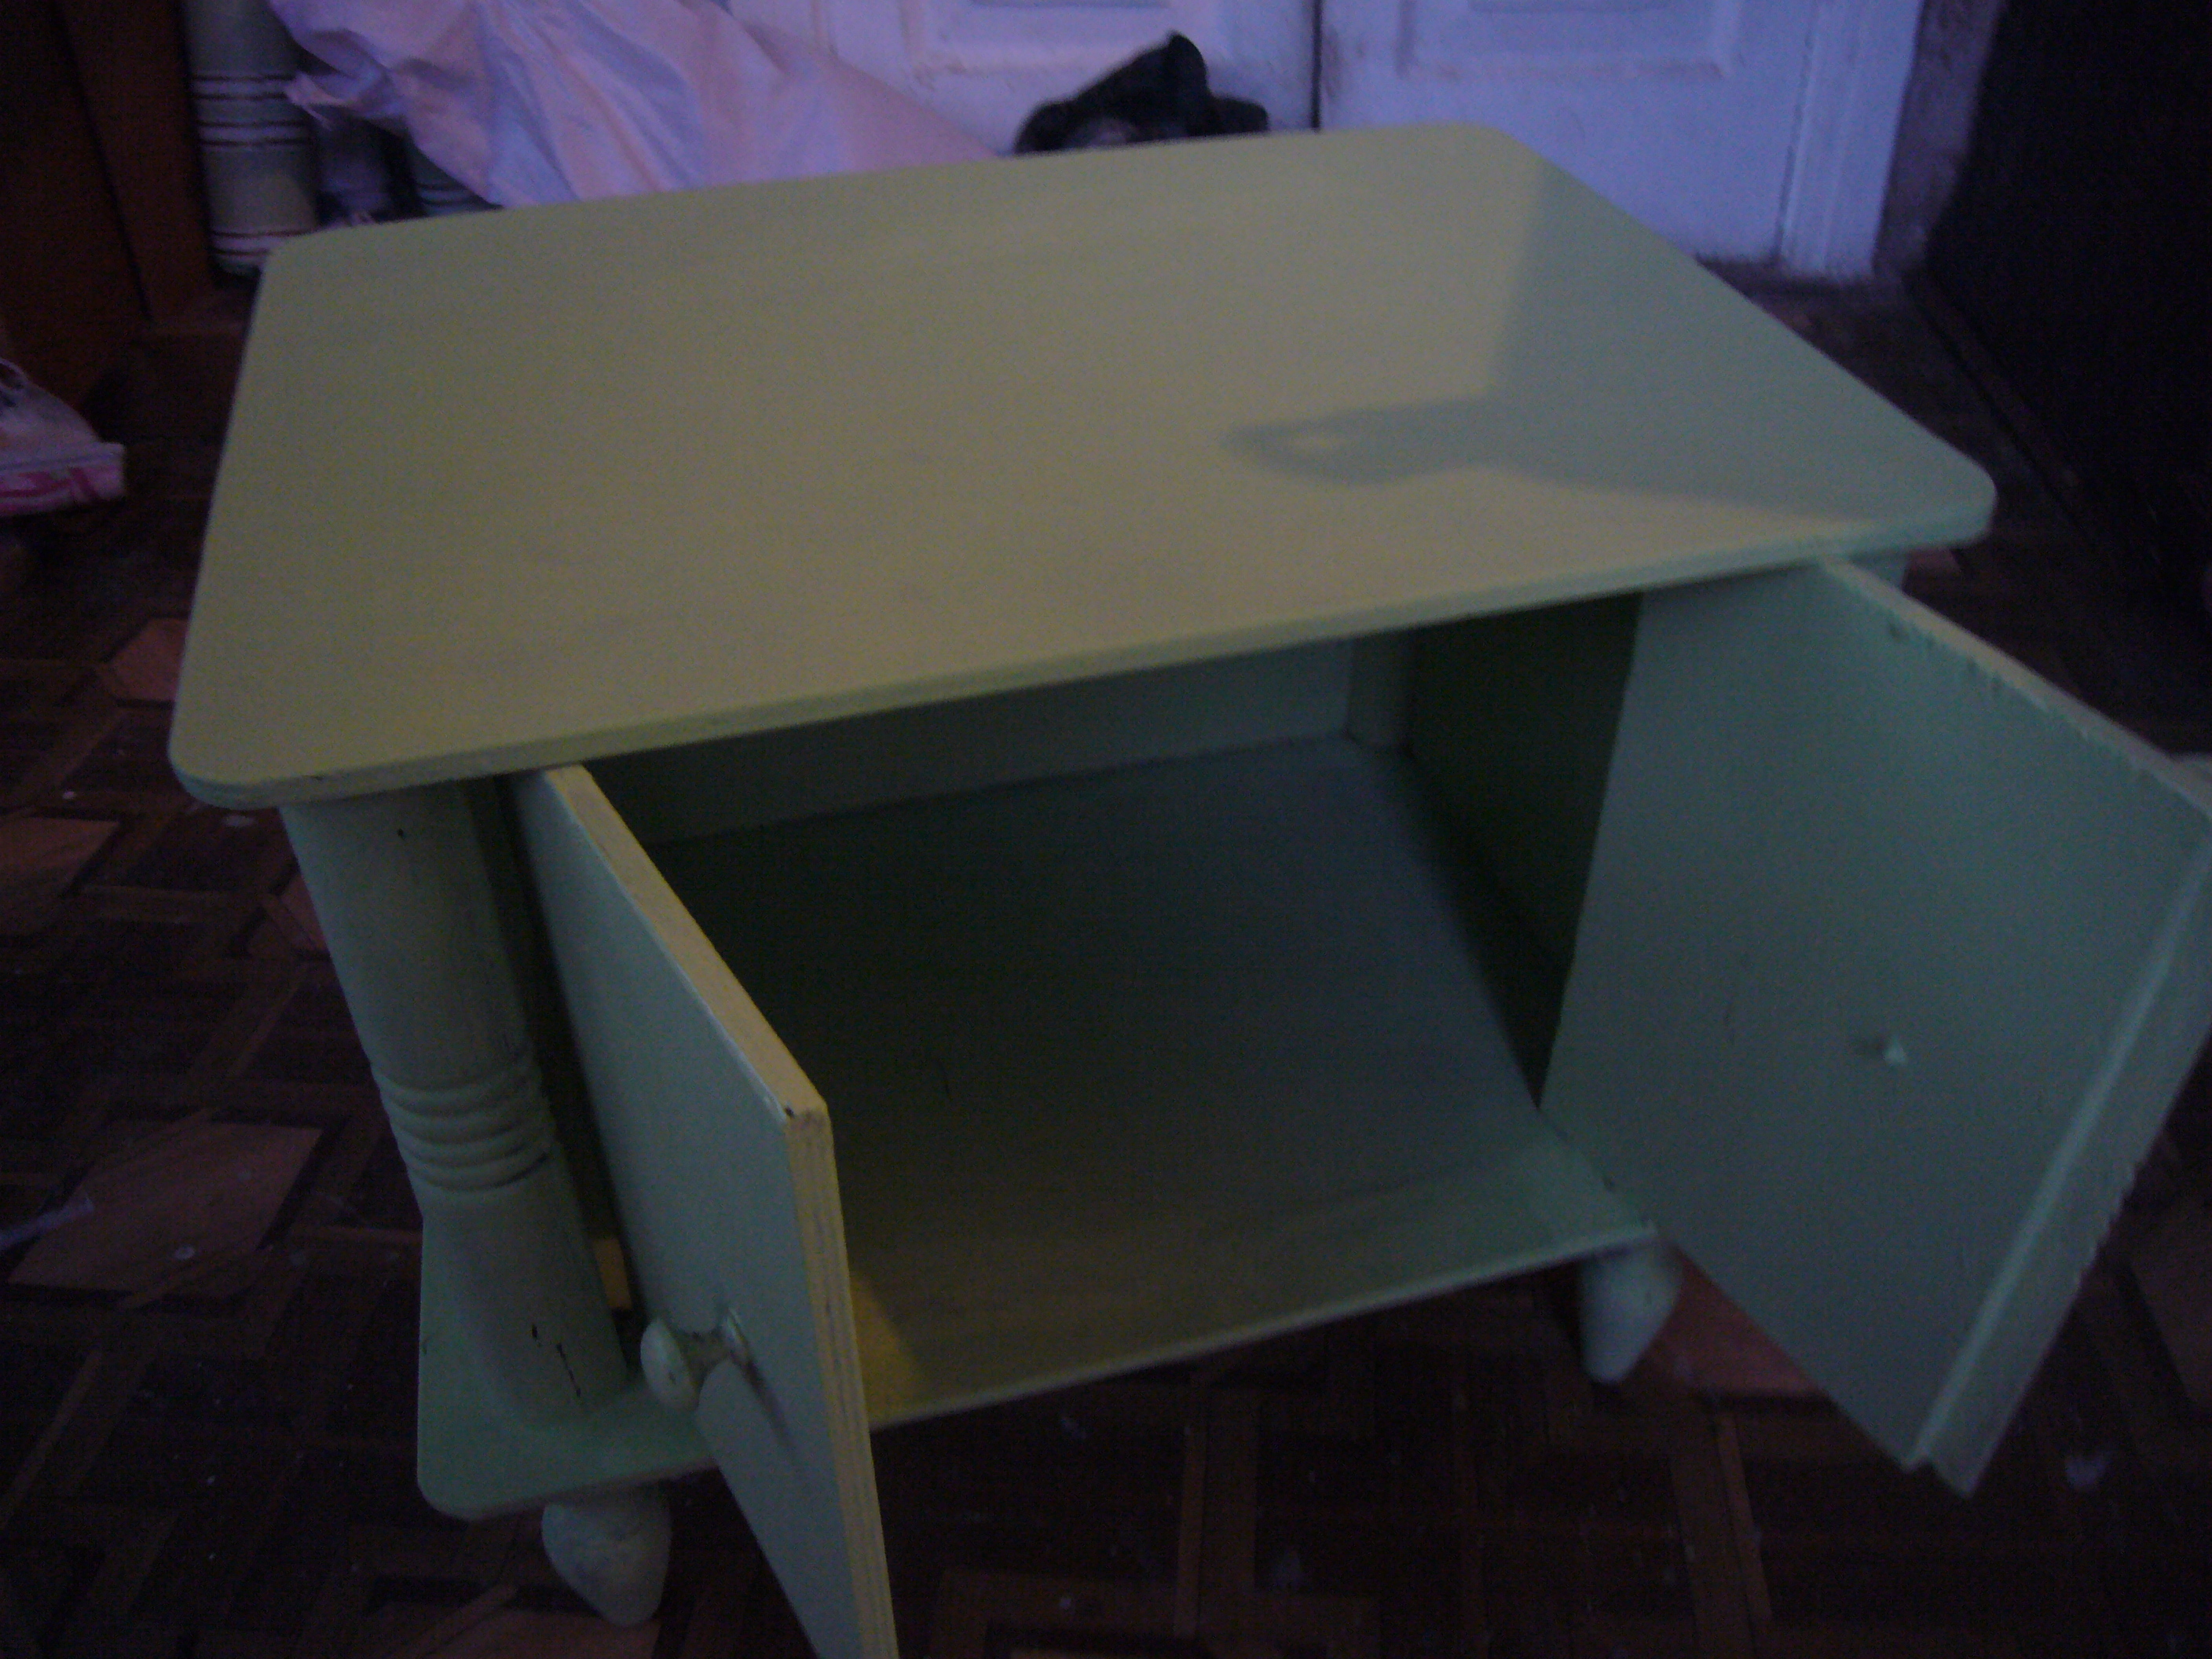 Furniture decoupage how to diy crafts decoupage ideas recycled crafts - Furniture restoration ideas ...